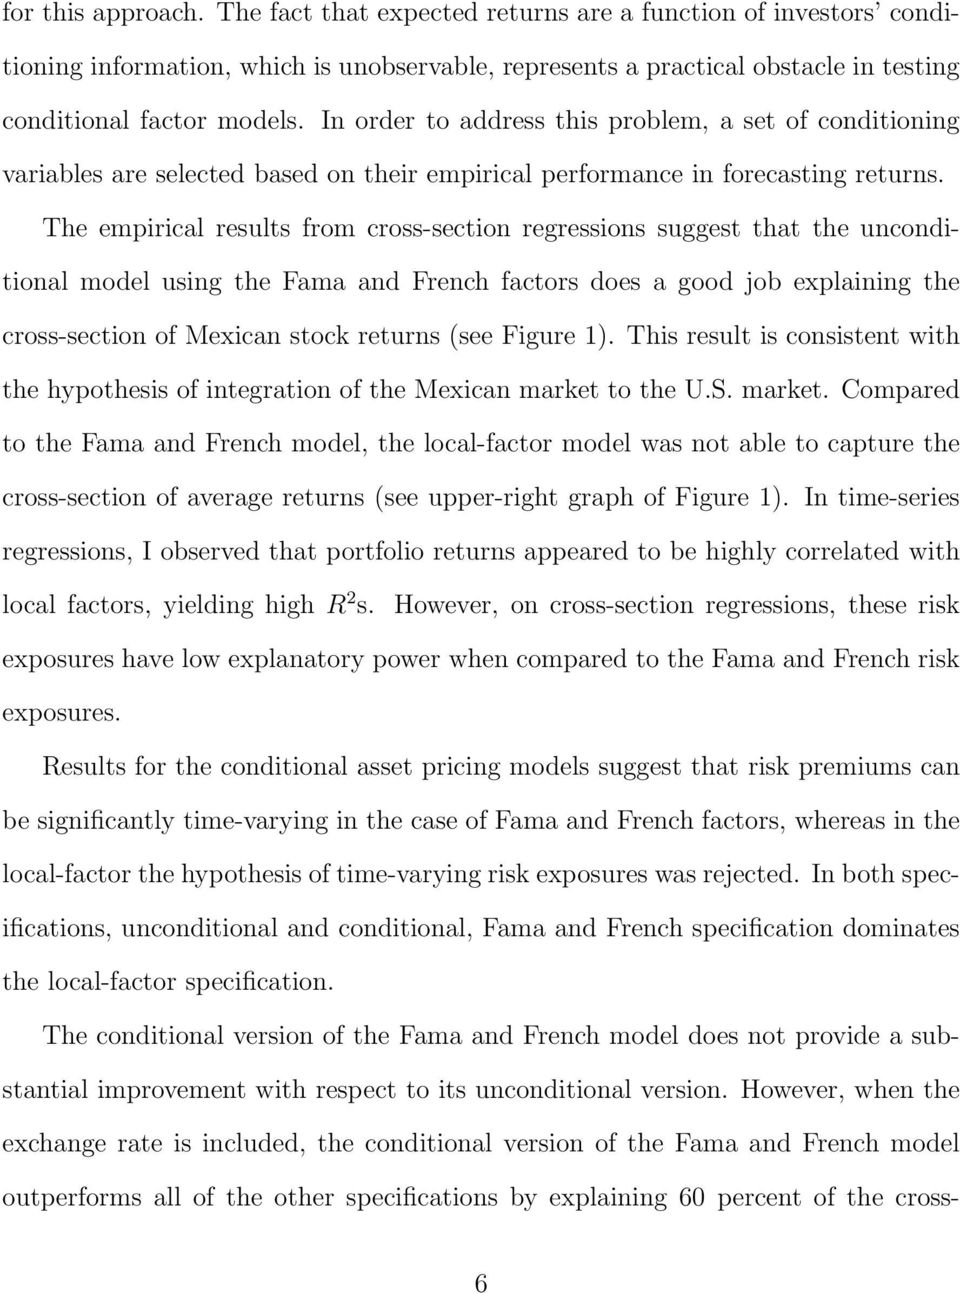 The empirical results from cross-section regressions suggest that the unconditional model using the Fama and French factors does a good job explaining the cross-section of Mexican stock returns (see